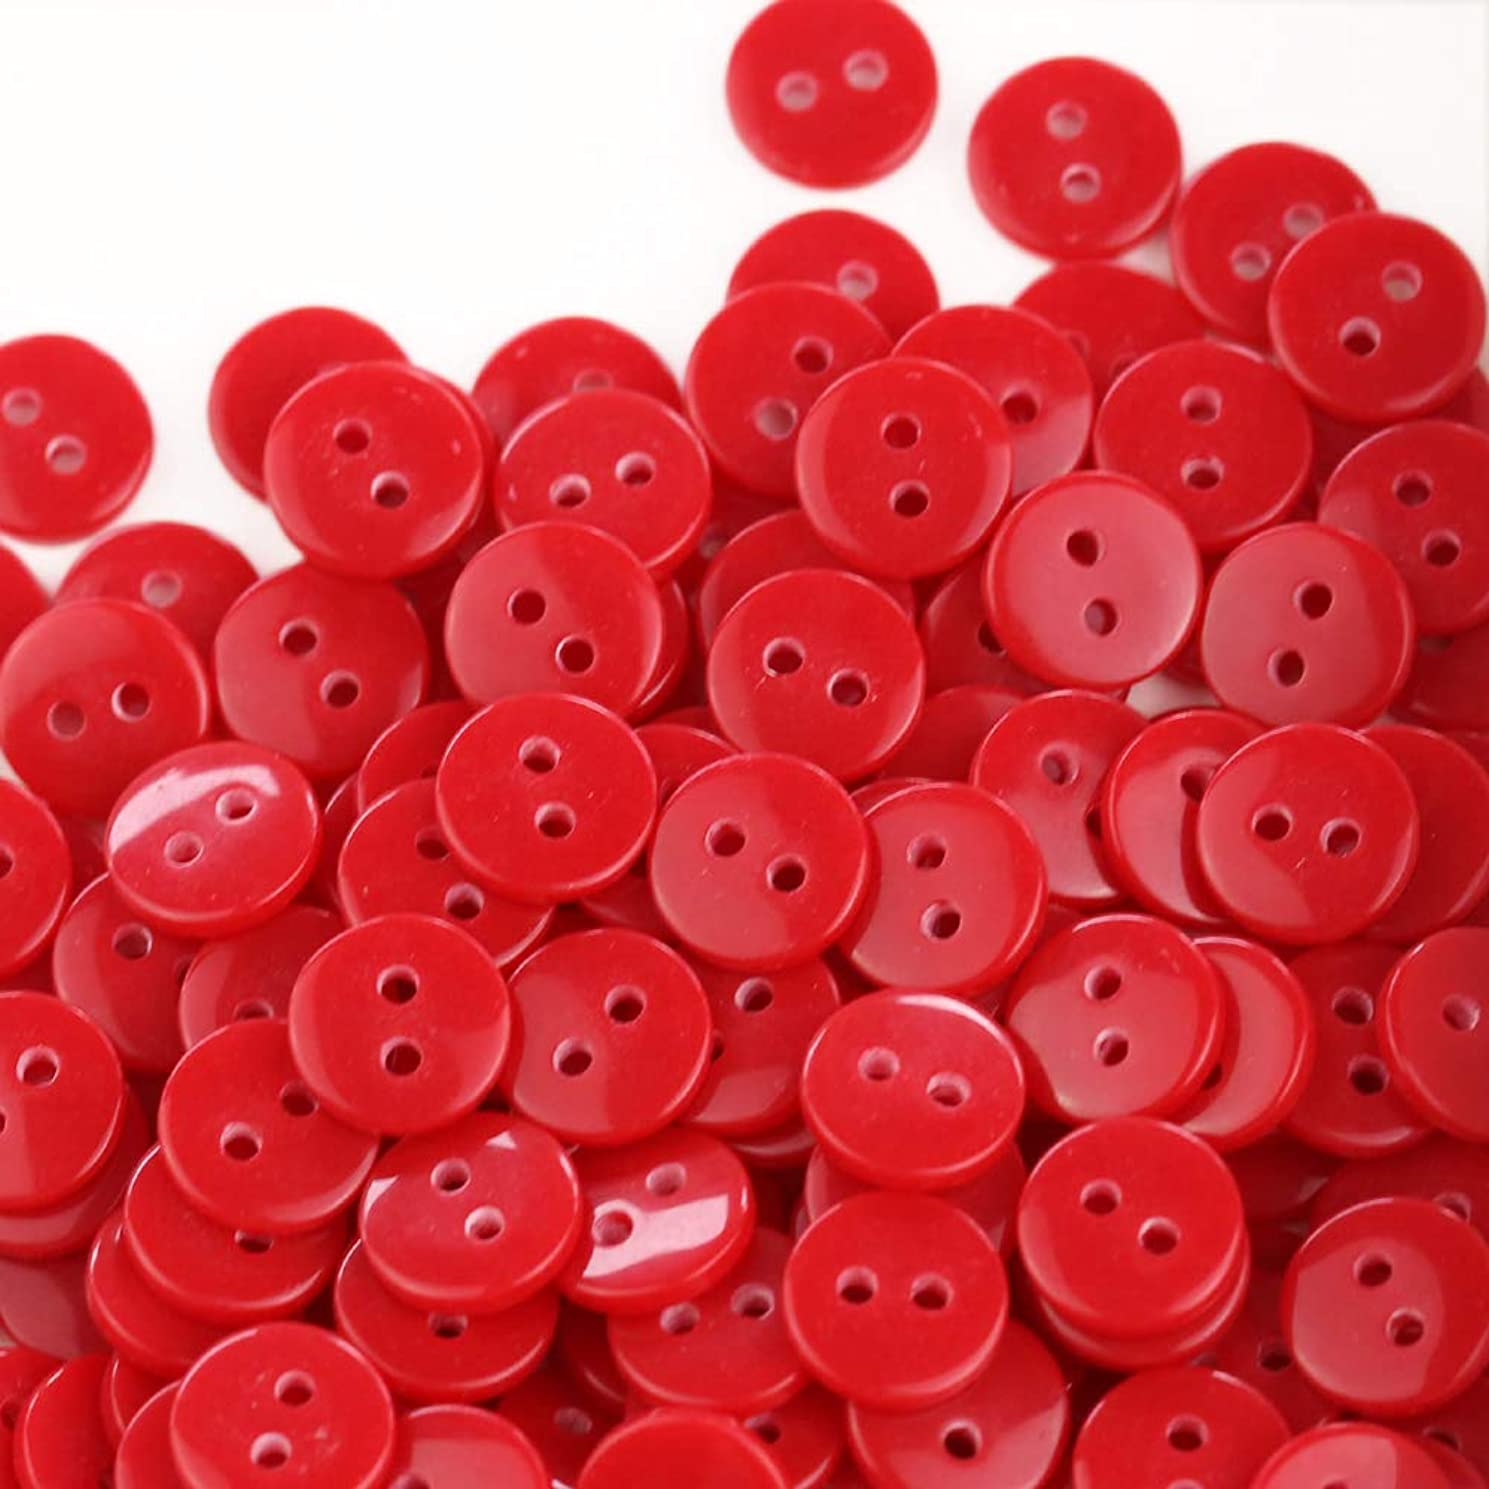 GANSSIA 11/32'' (9mm) Tiny size Sewing Flatback Resin Buttons Color Red Pack of 500 Pcs